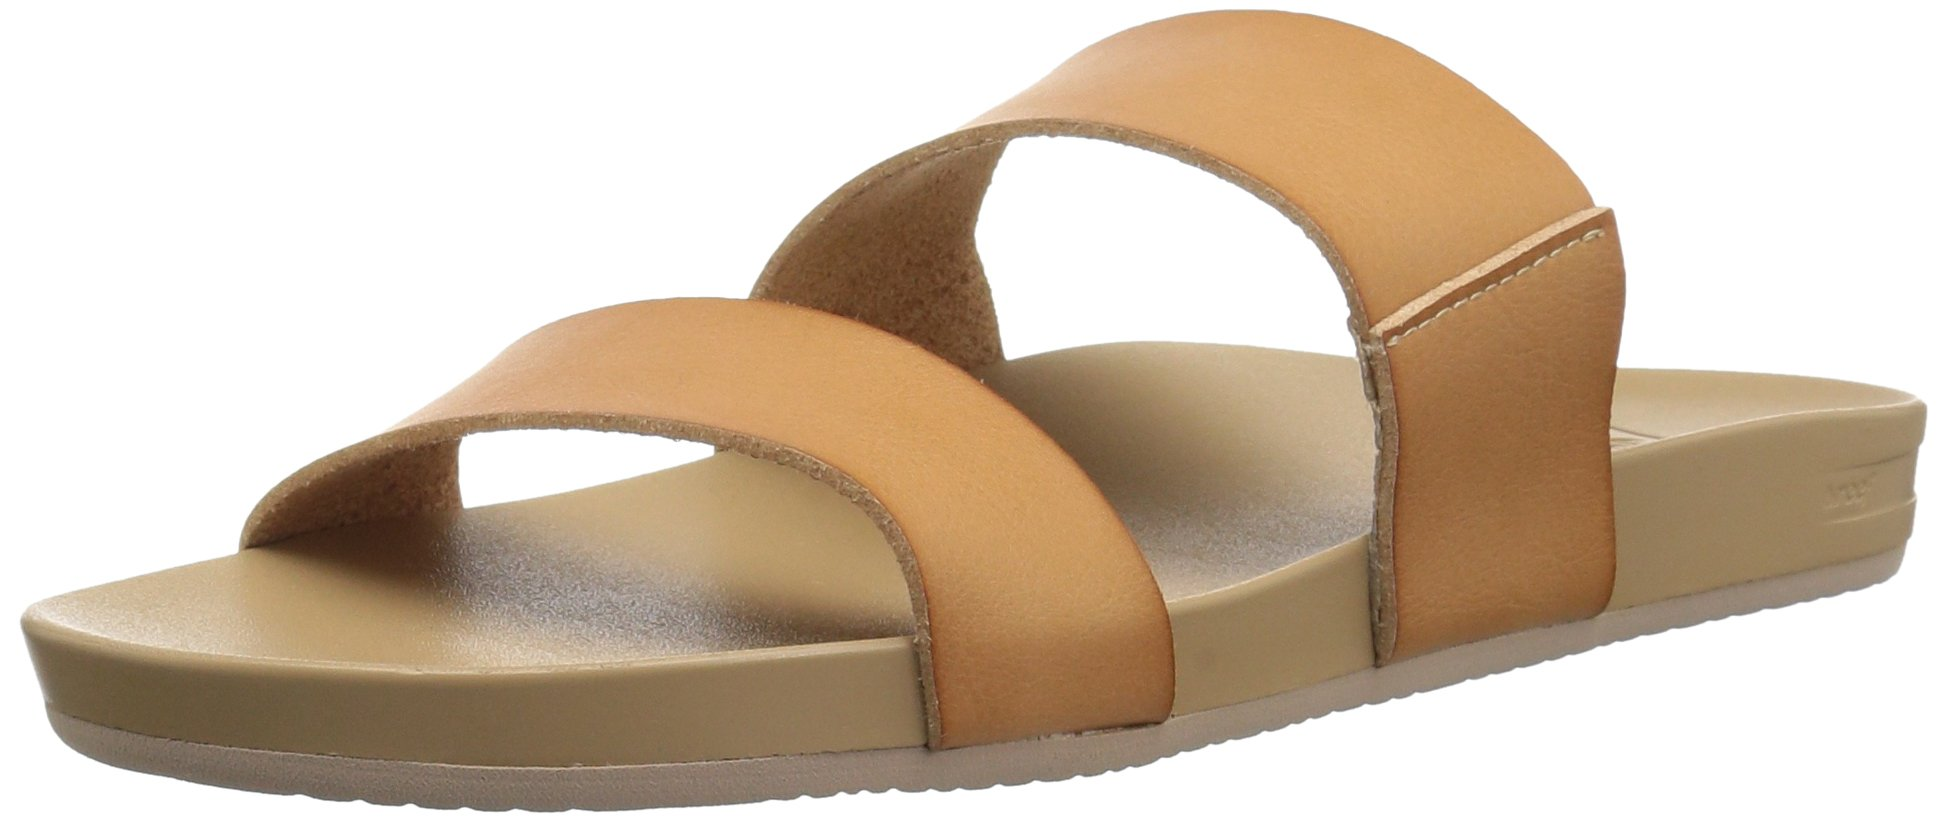 Reef Women's Cushion Bounce Vista, NATURAL, 7 M US by REEF